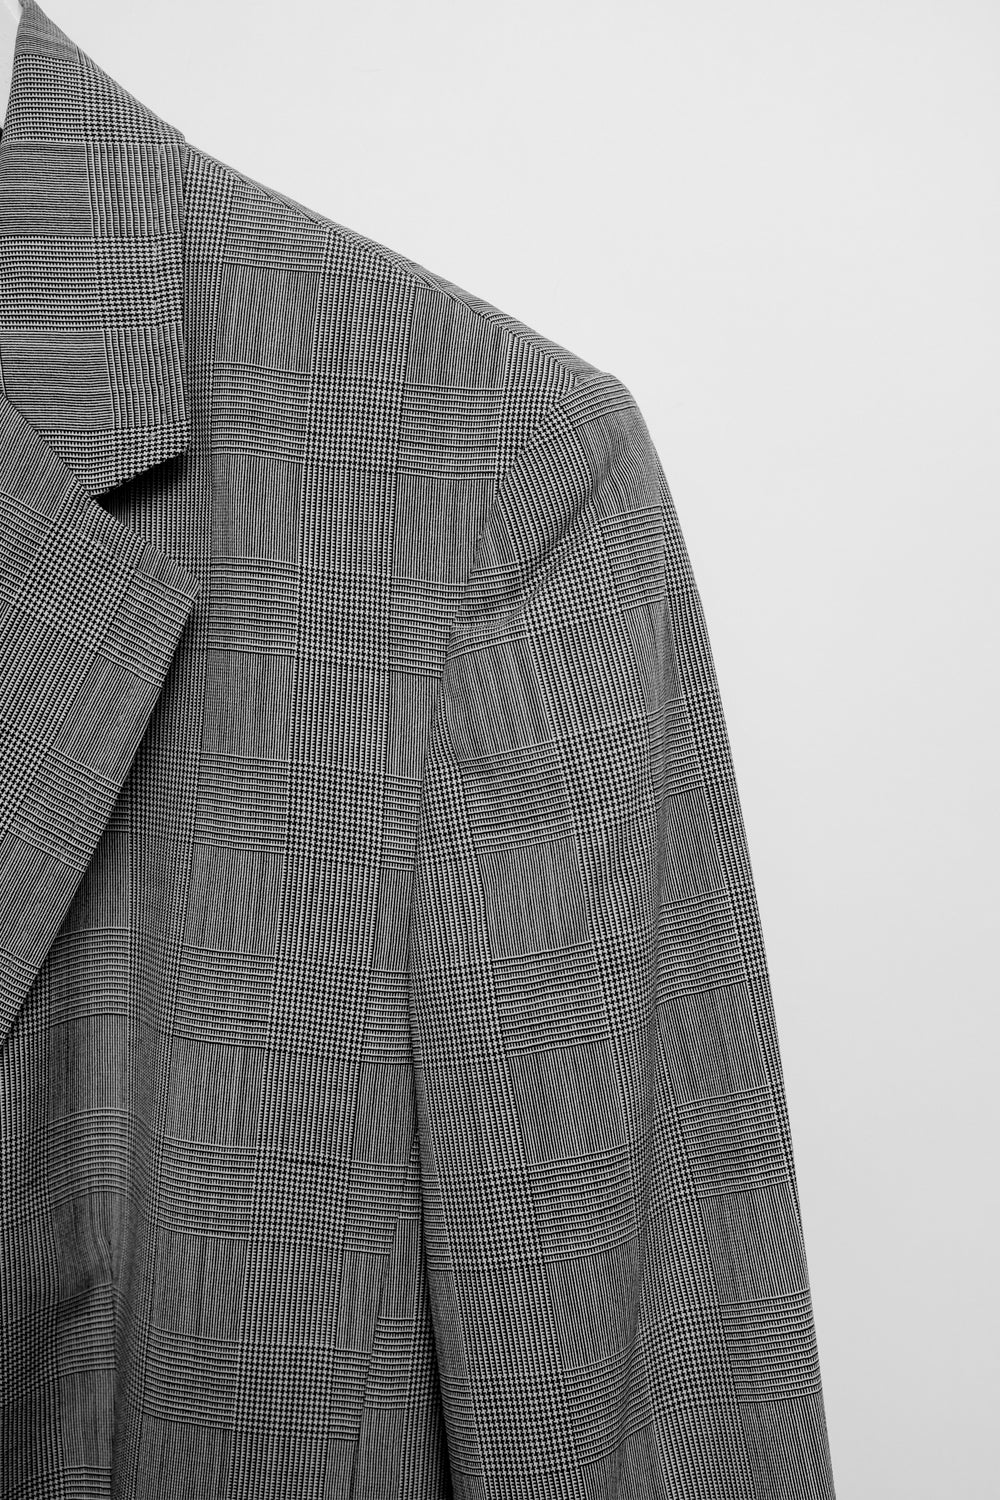 0020_CHECKED LIGHT WOOL VINTAGE SUIT